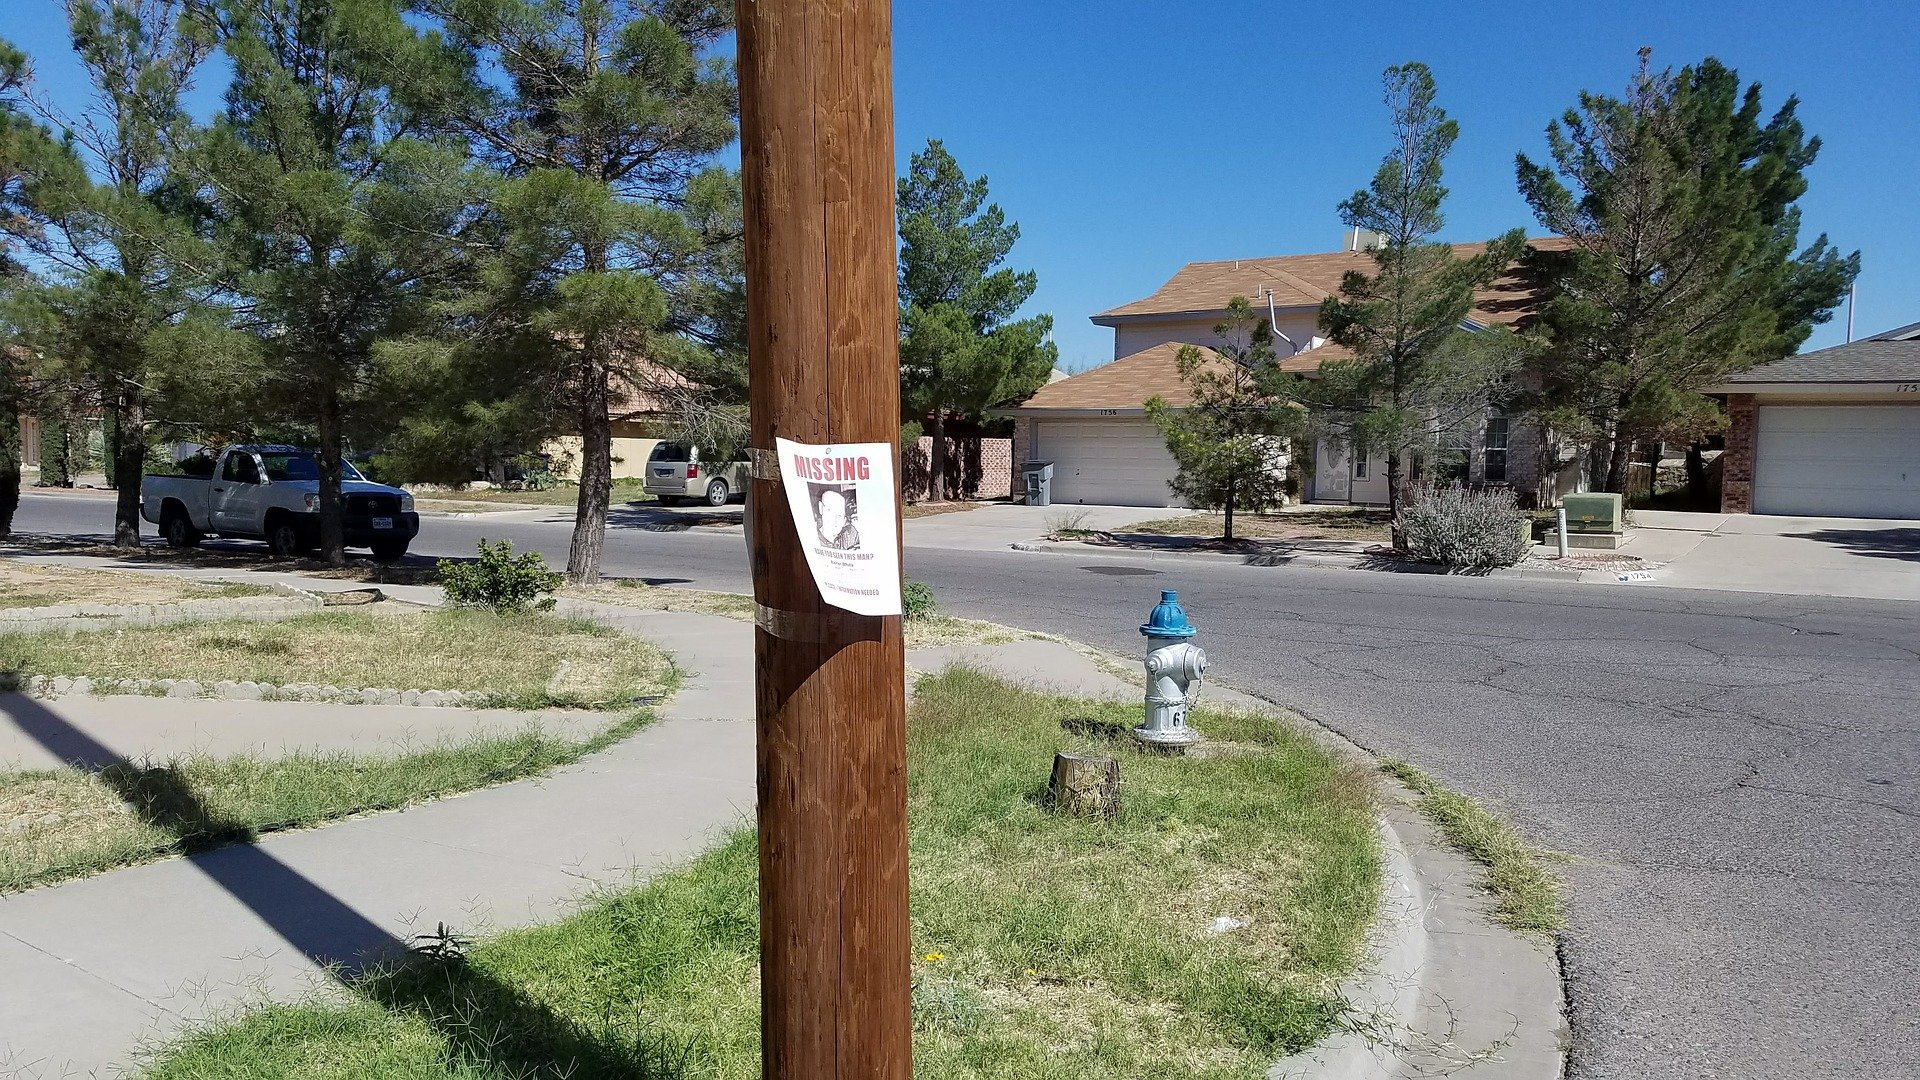 Missing person sign tacked to a wooden pole. | Source: Pixabay/Abel Delgado